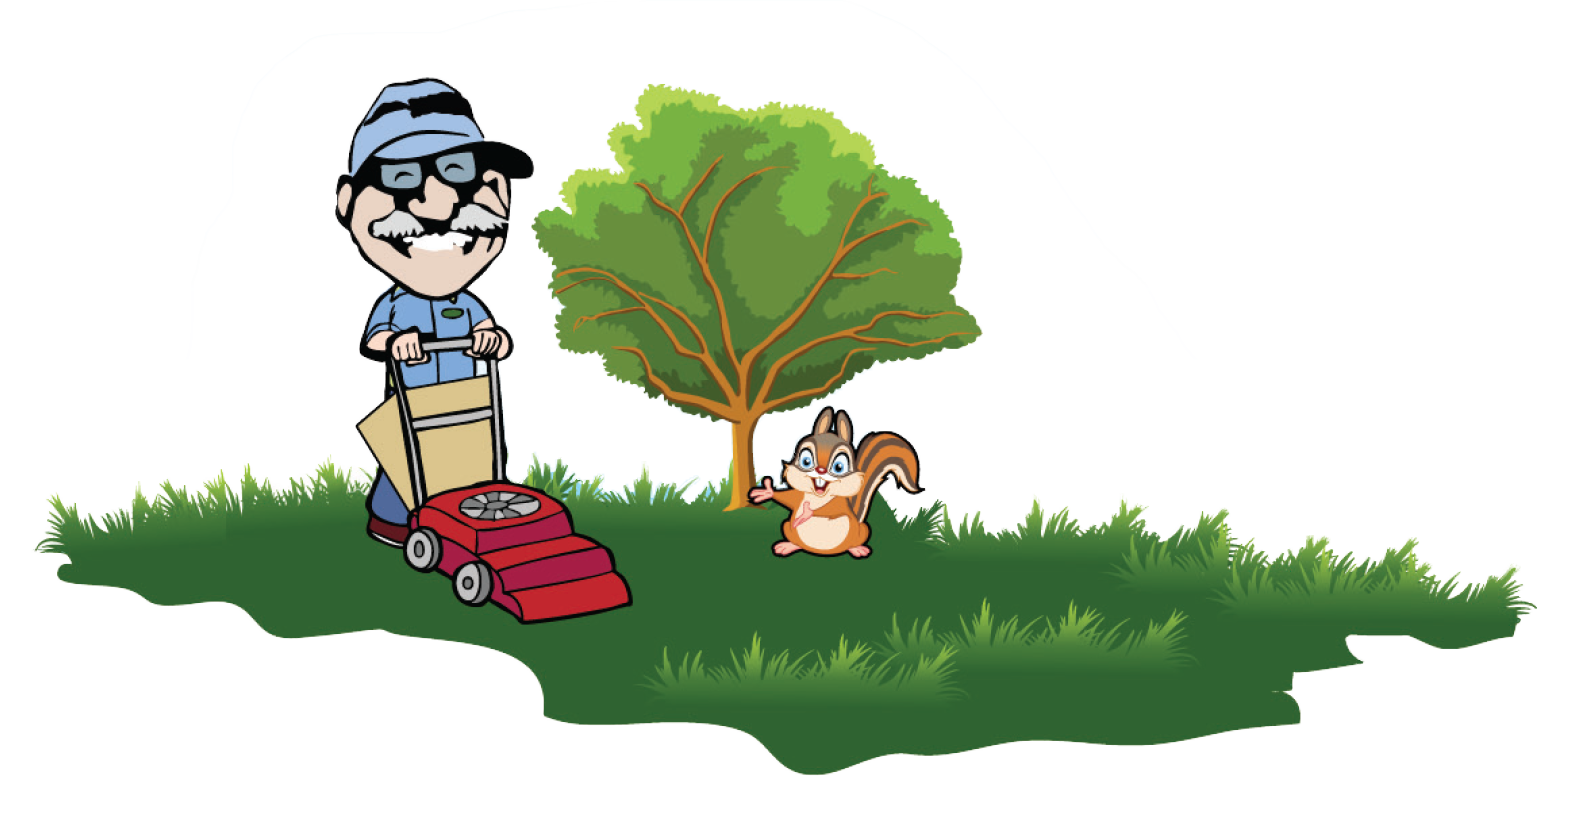 Lawn care clipart spring. Growing season mowing grounds